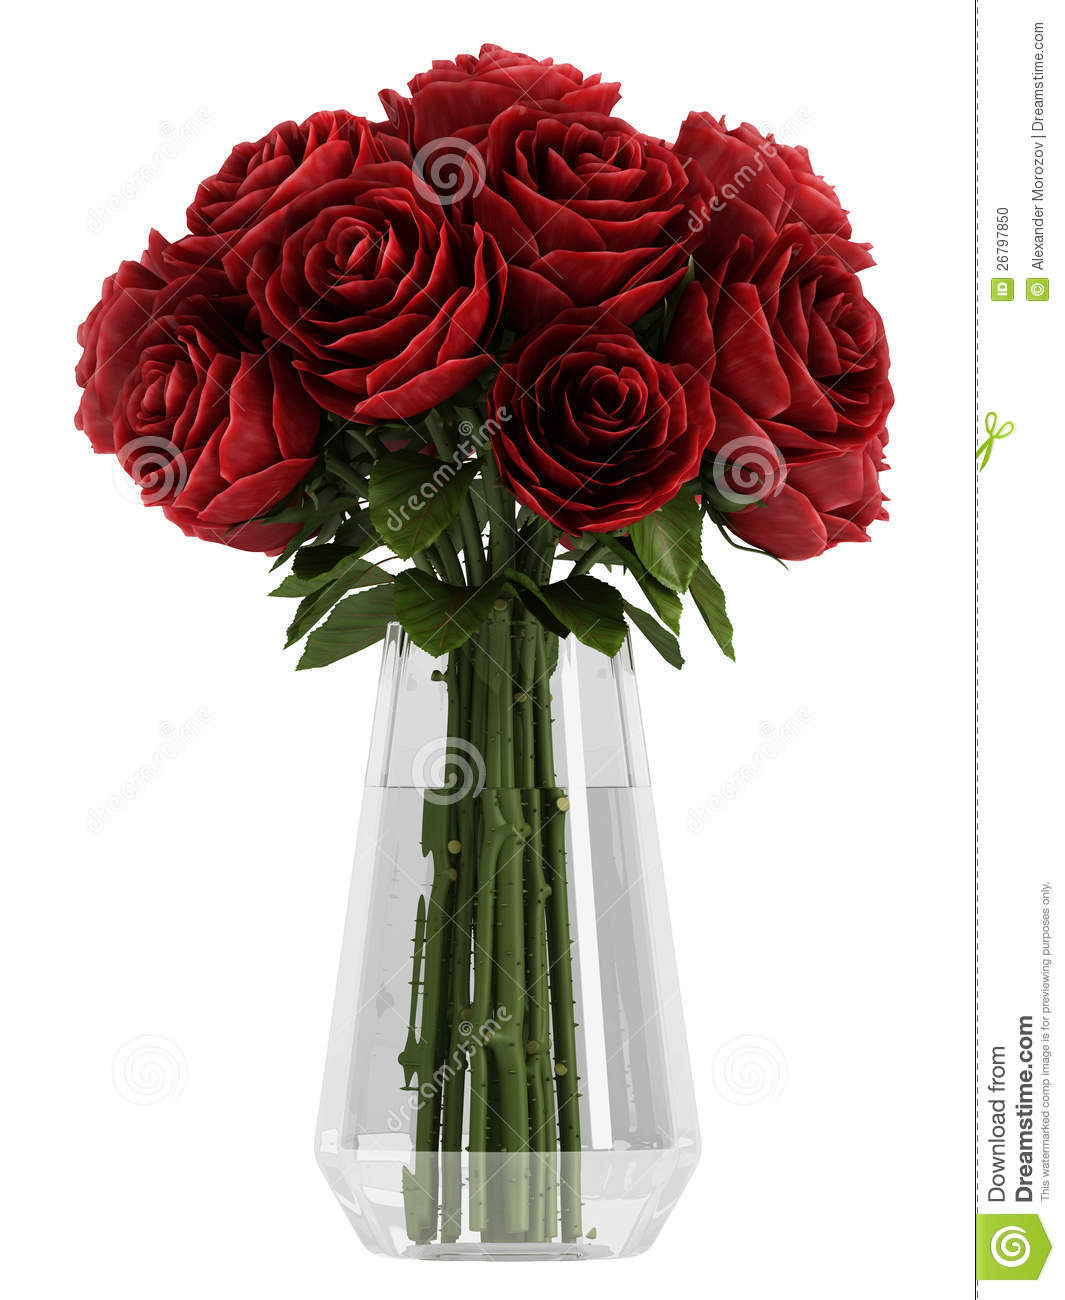 Vase Of Deep Burgundy Red Roses Stock Photo Image 26797850